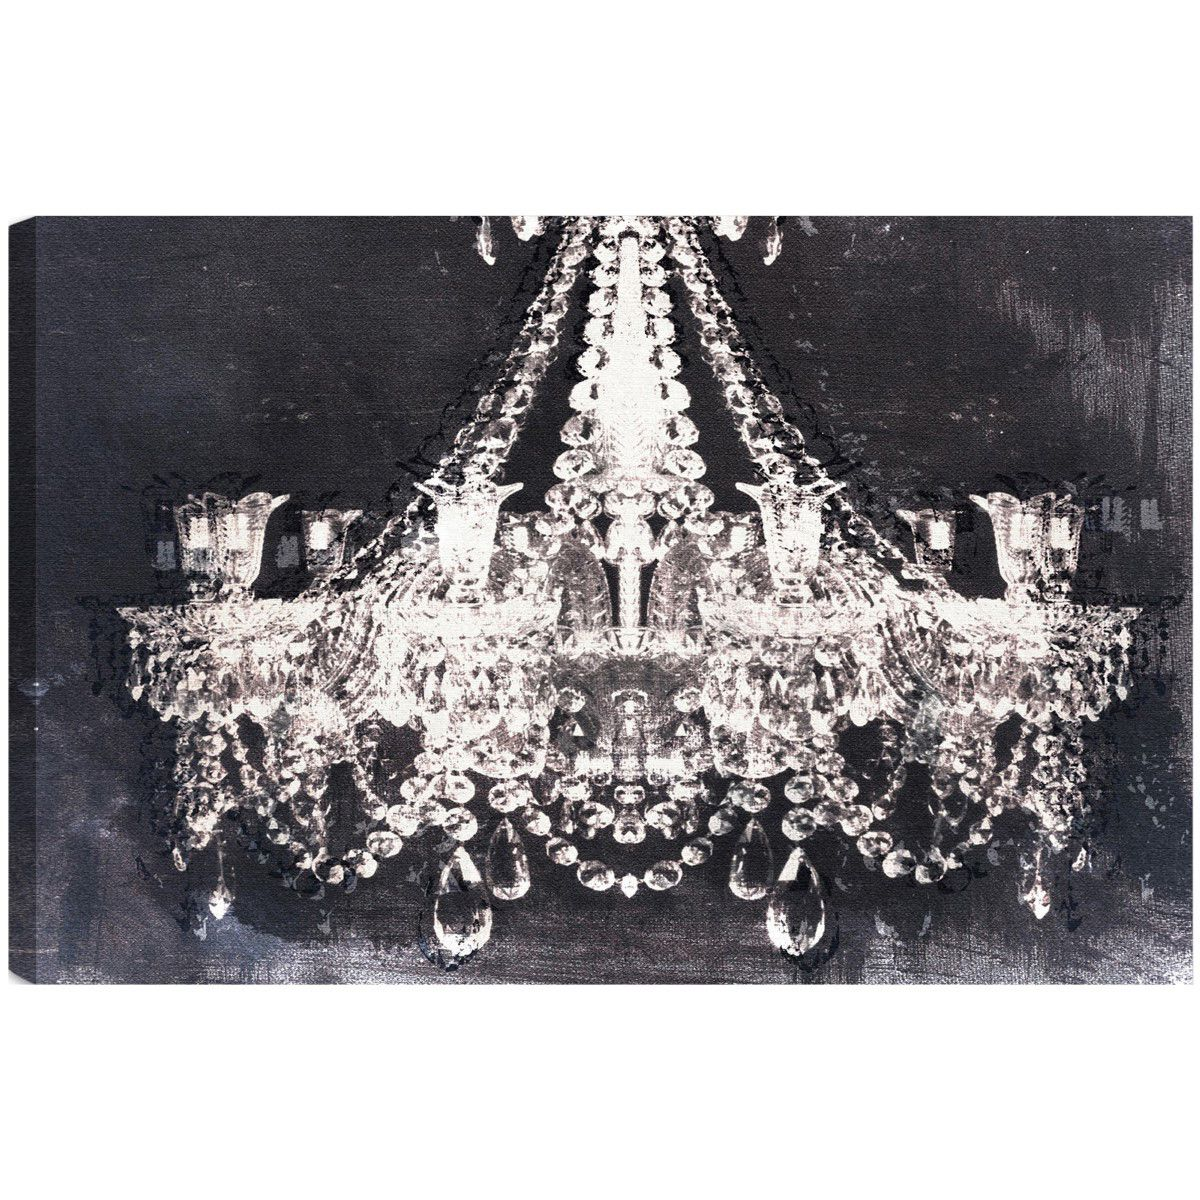 gallery wrap art print wall giclee chandelier on canvas p modern background black wood